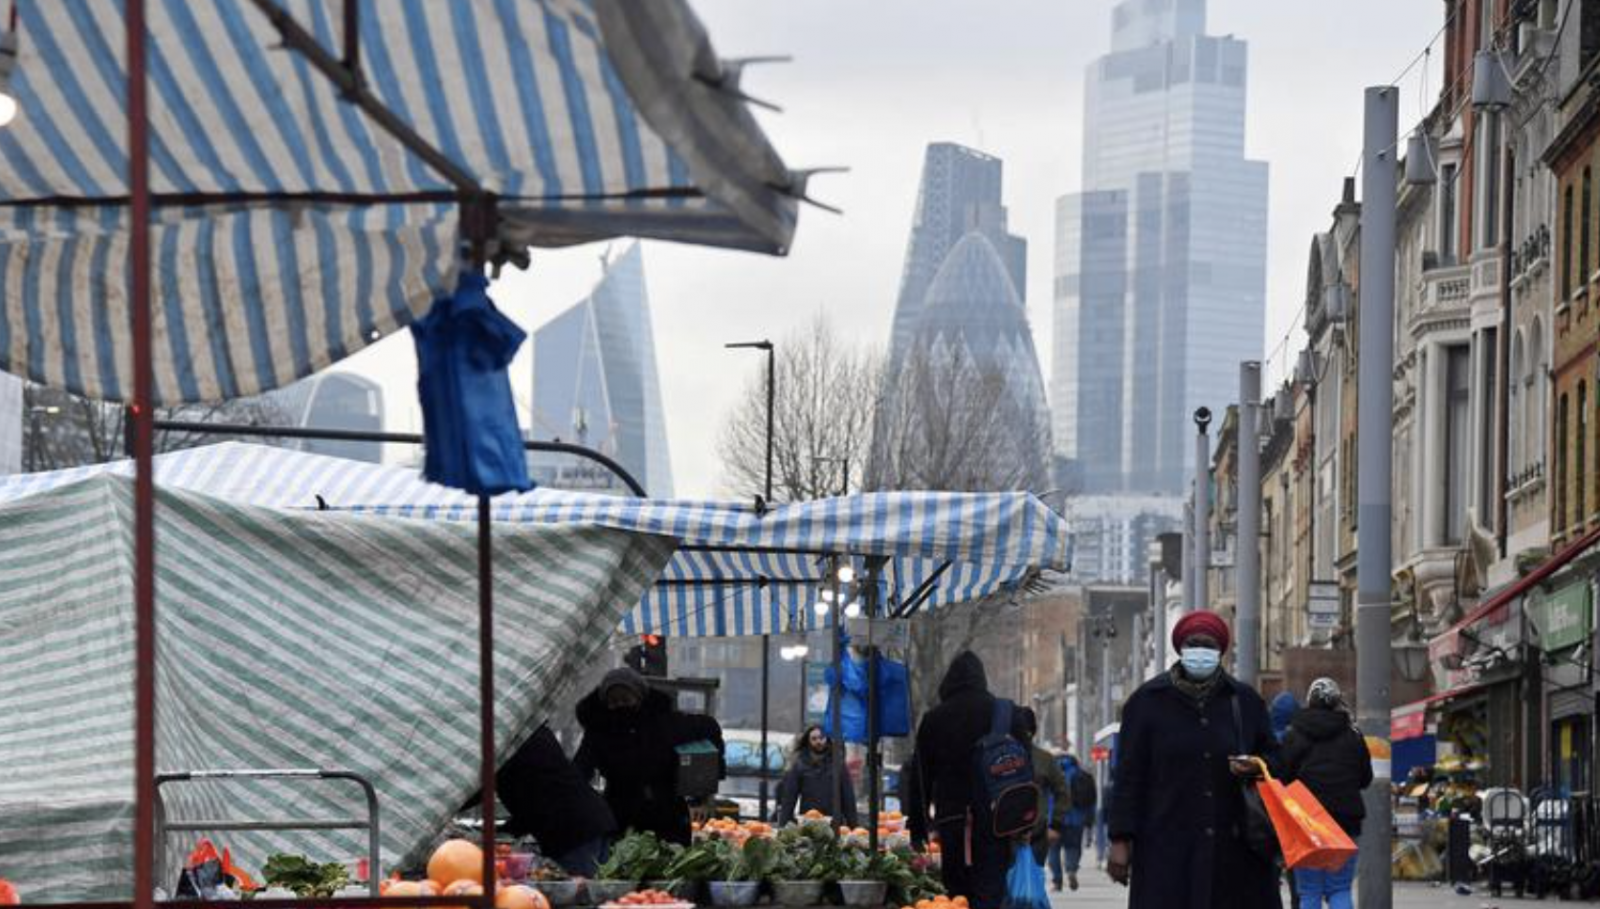 UK economy set to grow faster than the U.S. this year - Goldman